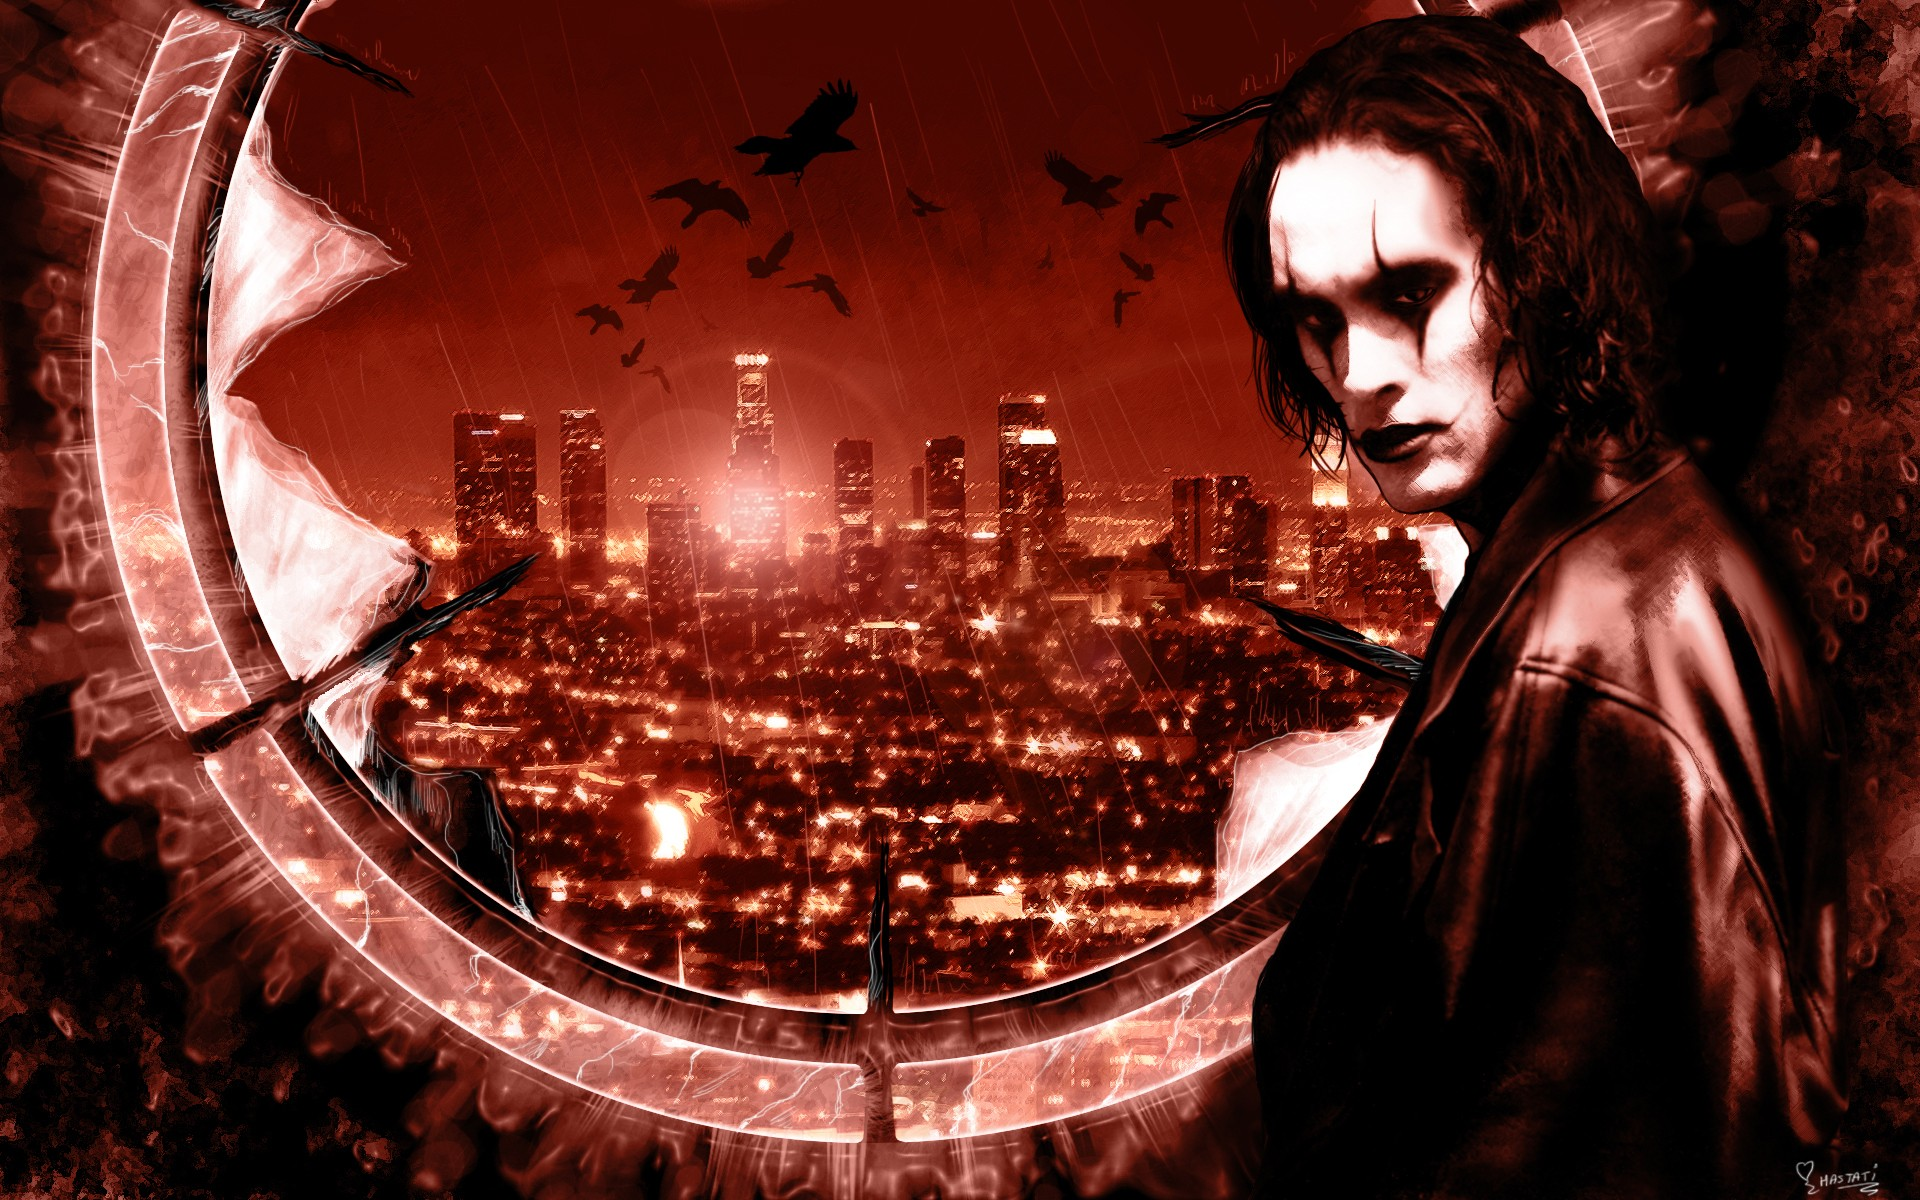 Wallpaper with the main hero of the movie The Crow